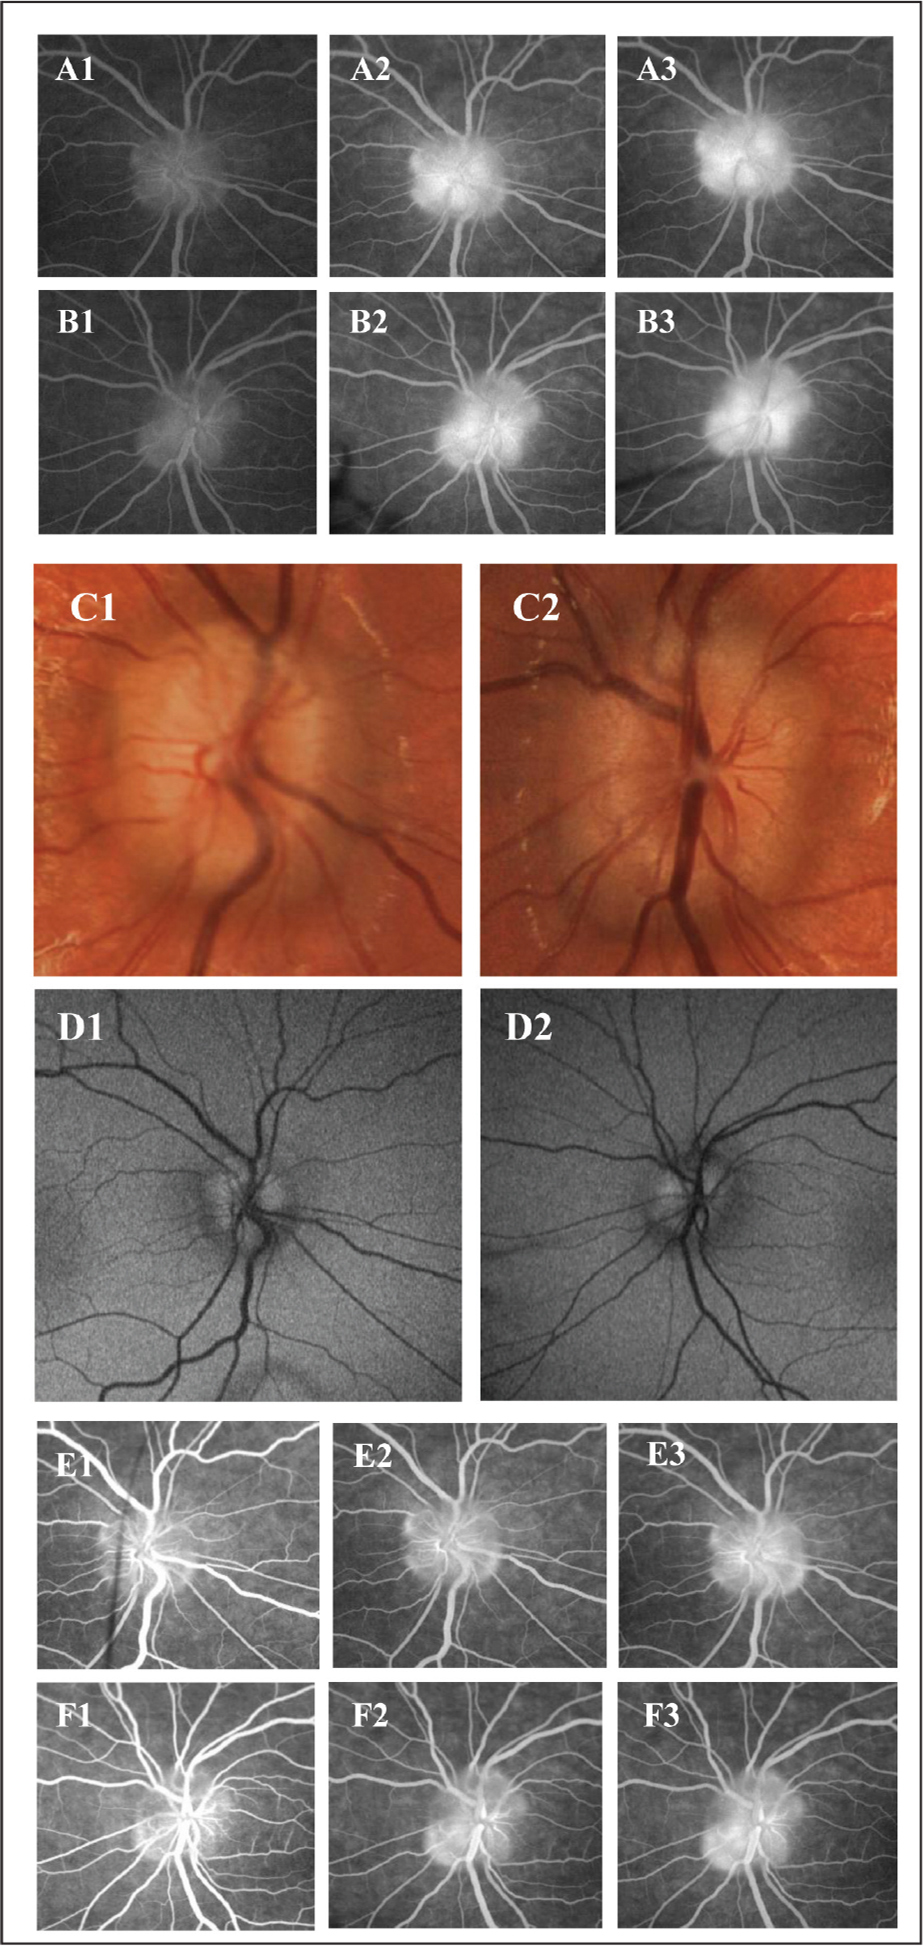 Optic nerve imaging of case 1. A1–A3 (right eye), B1–B3 (left eye): oral fluorescein angiography images at 20, 30, and 60 minutes after dye consumption. Increasing circumferential and nodular hyperfluorescence, but margins of hyperfluorescence remain sharp. C1 (right eye), C2 (left eye): color photographs showing 360 degrees of optic nerve head elevation without vessel obscuration. D1 (right eye), D2 (left eye): positive autofluorescence of each optic nerve head. E1–E3 (right eye), F1–F3 (left eye): intravenous fluorescein angiography images at < 1, 2 to 3, and > 5 minutes after dye injection. Increasing circumferential (both eyes) and nodular (left eye) hyperfluorescence, but margins of fluorescence remain sharp.